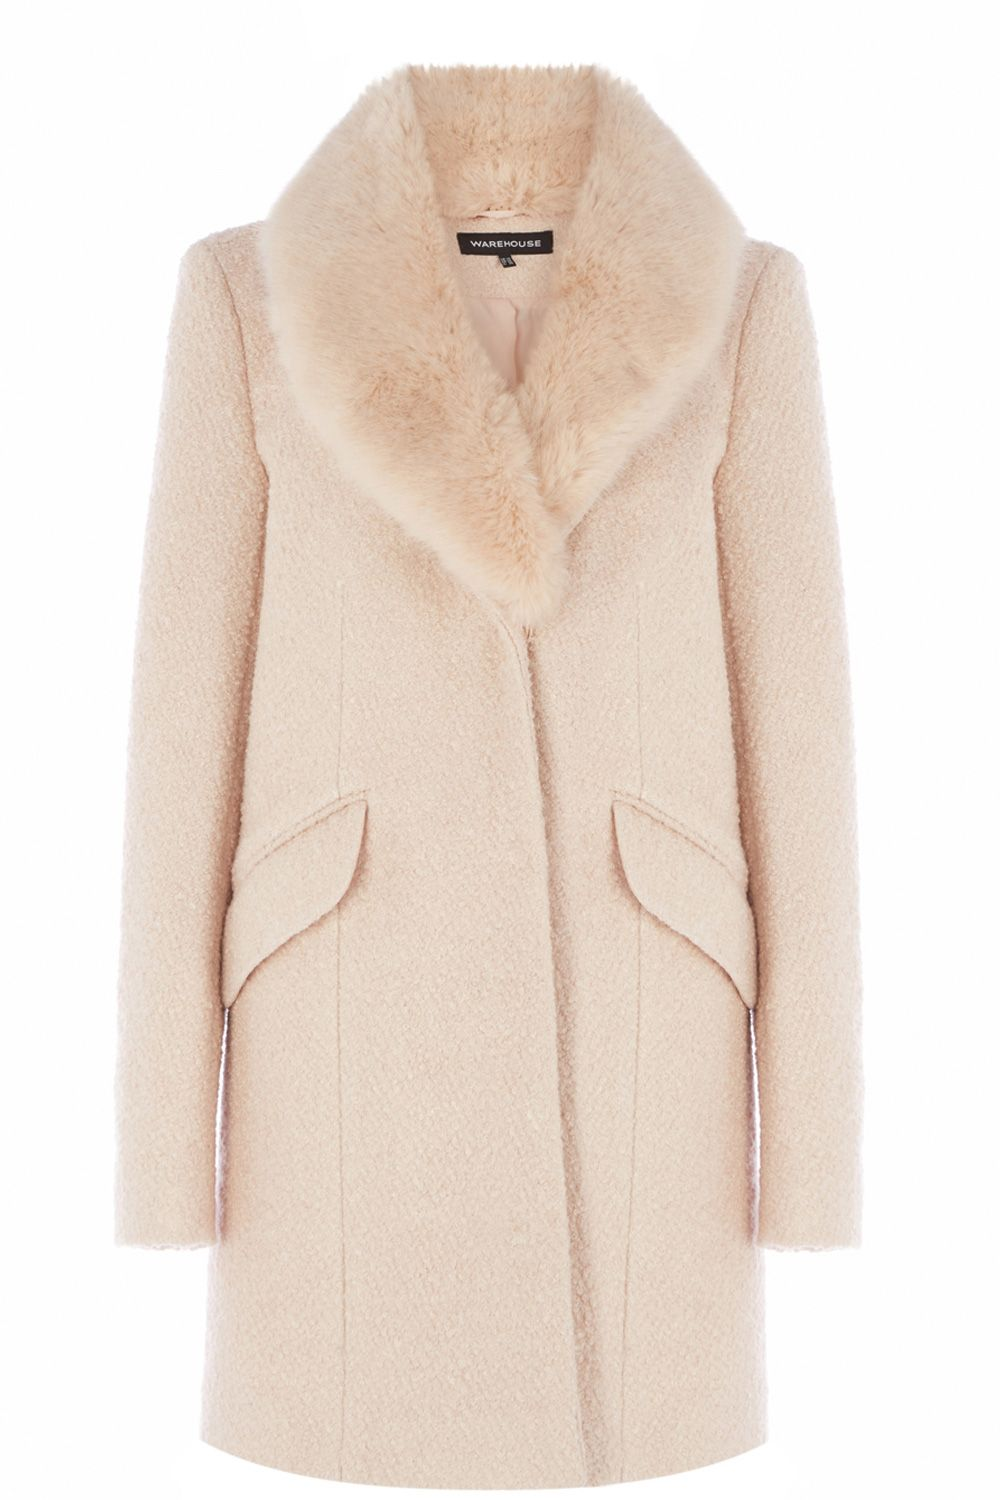 Coats & Jackets | Pink Tweed Faux Fur Collar Coat | Warehouse ...